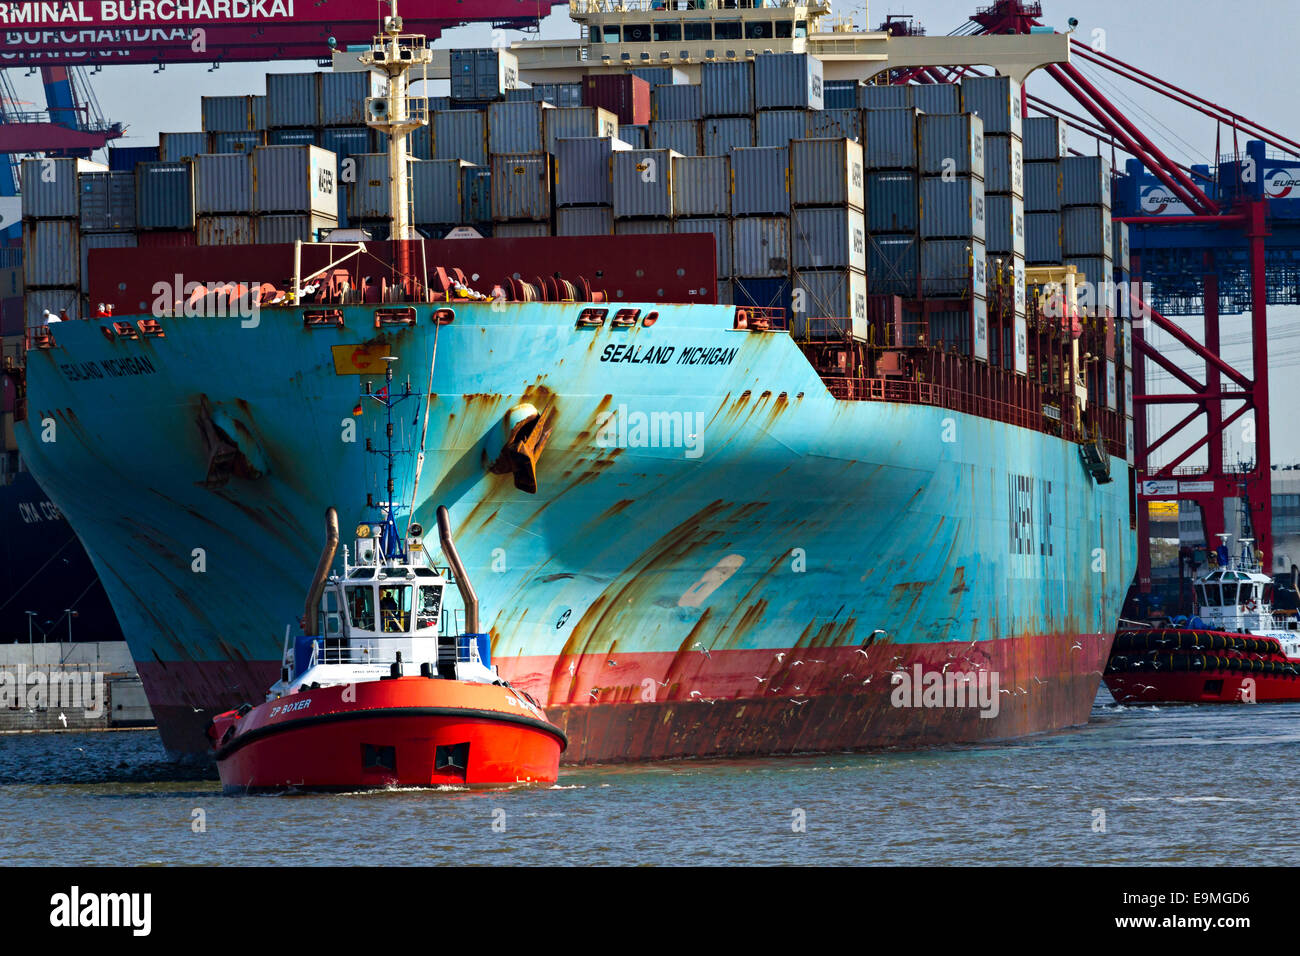 Container Ship Sealand Michiigan being towed by tug boat, Hamburg Harbour, Germany, Europe. - Stock Image